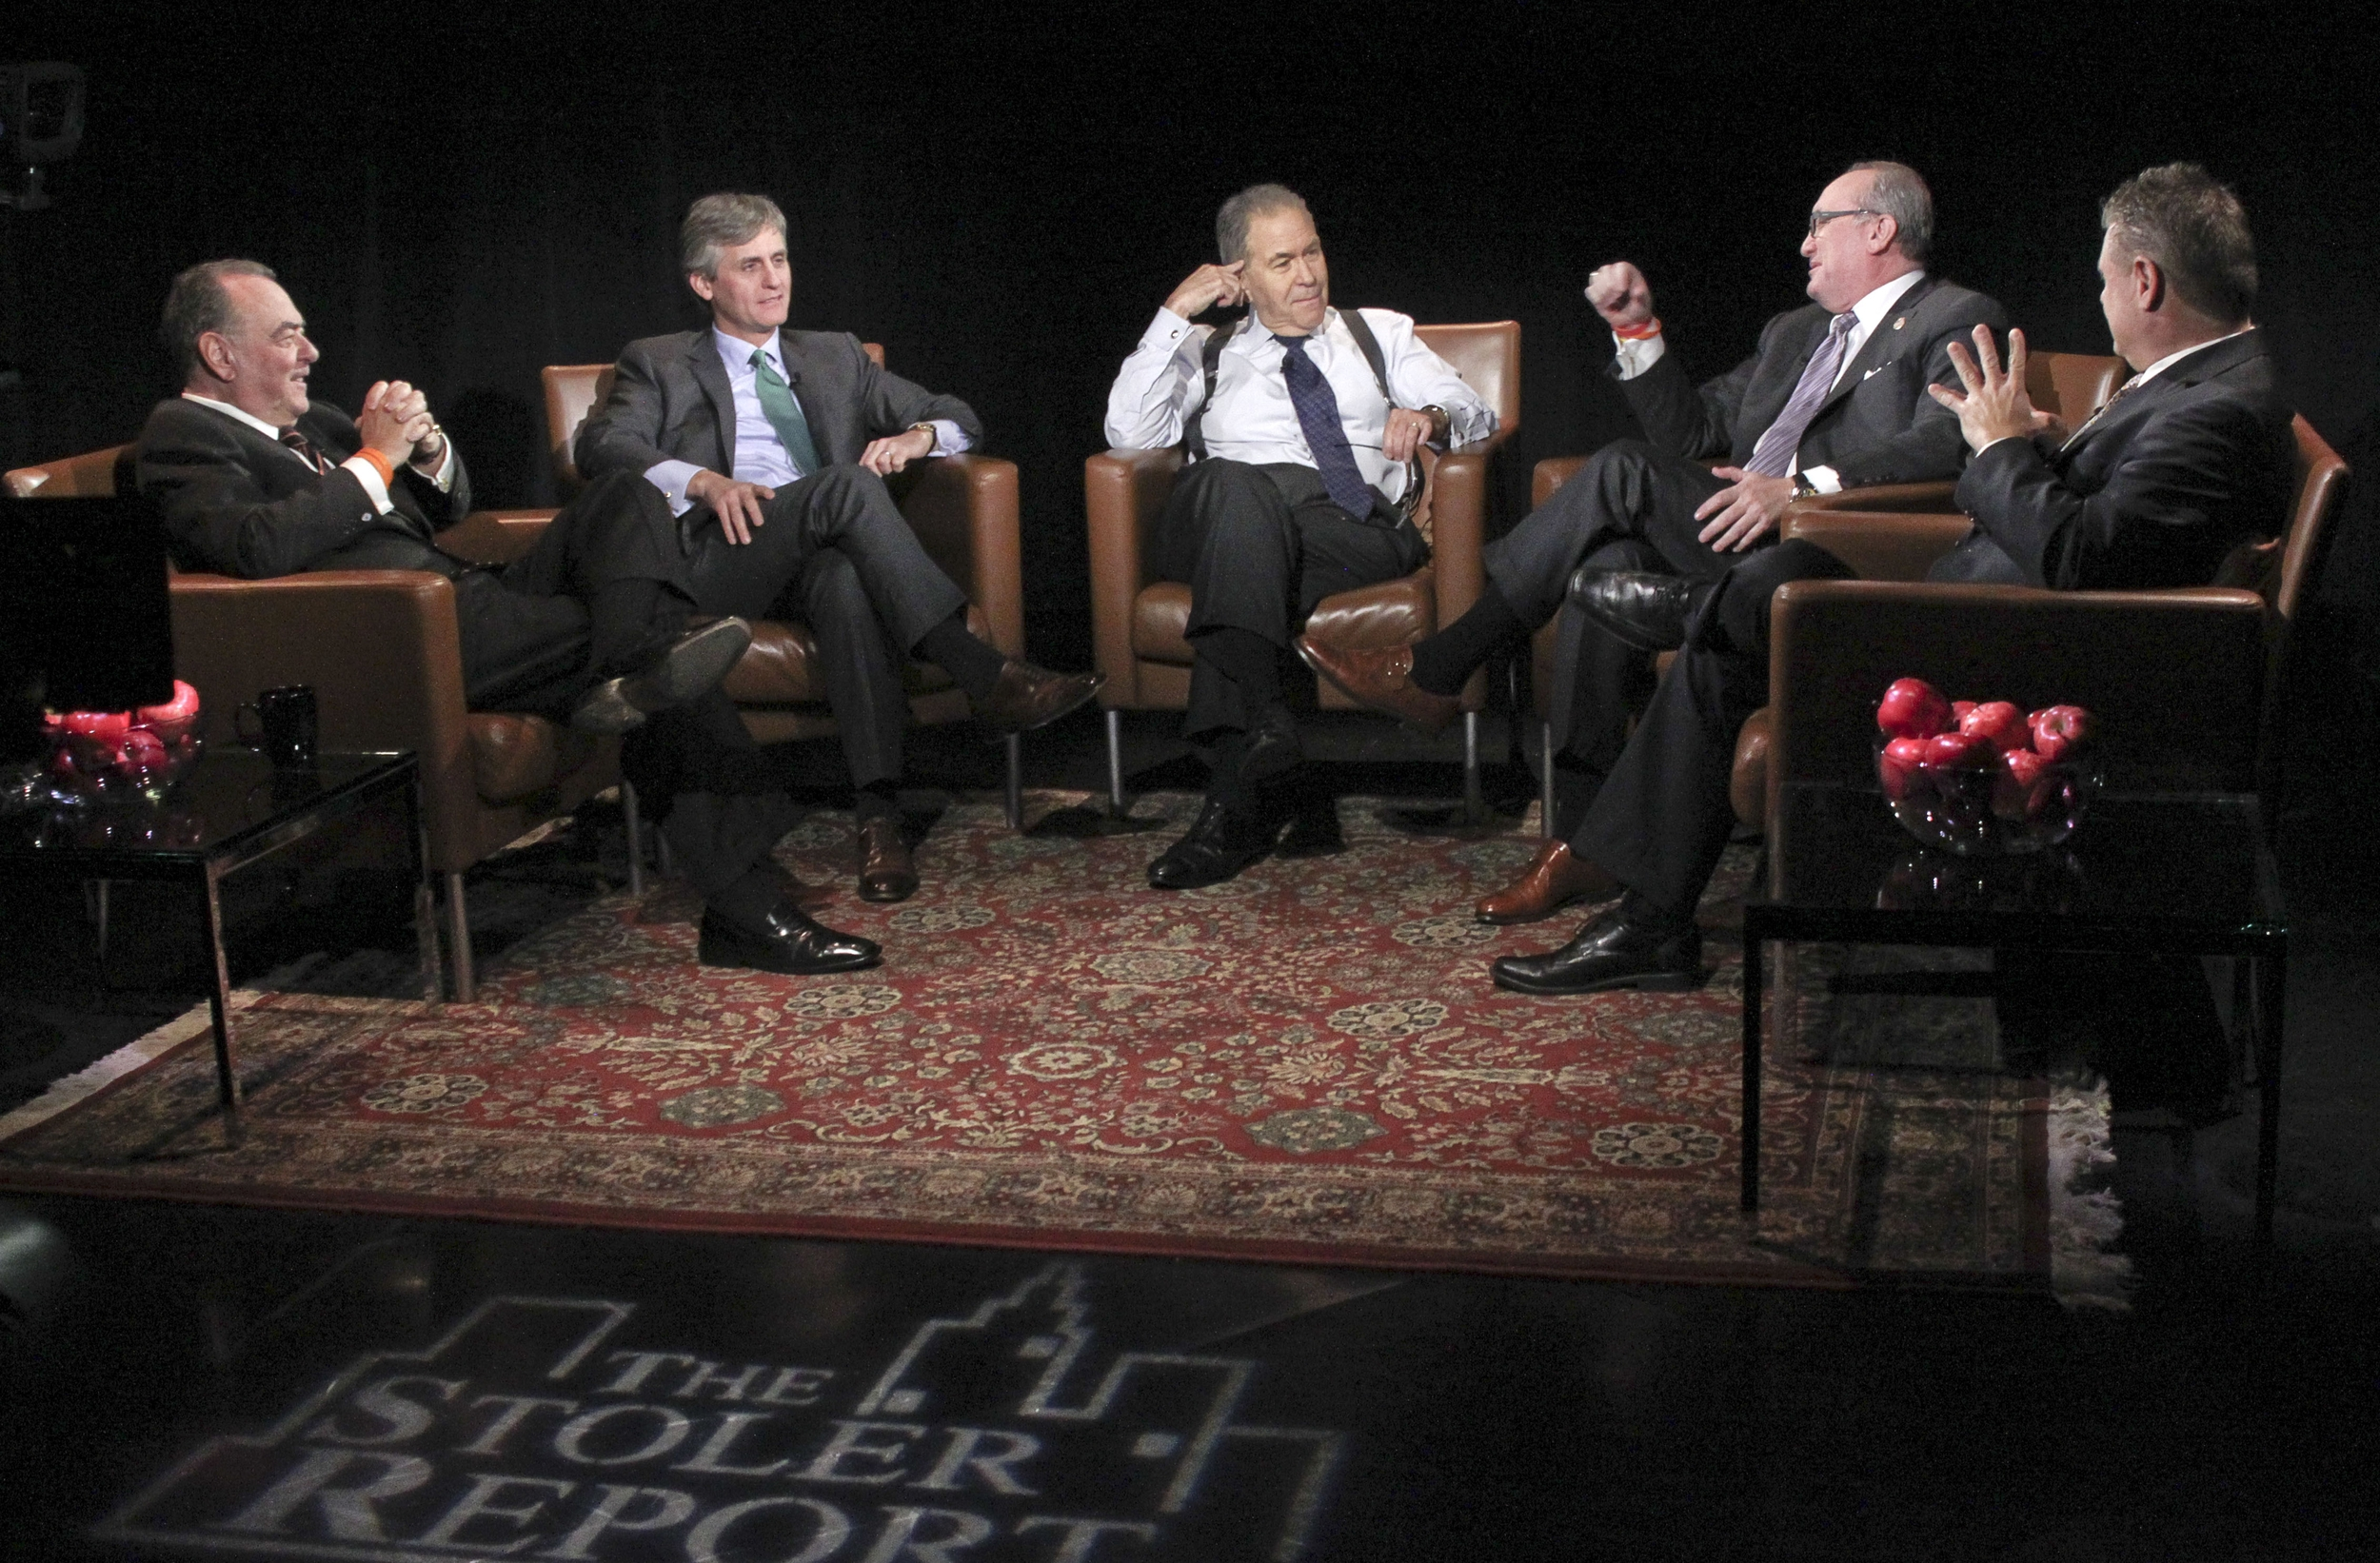 siegel, russo, gino and bruce.JPG